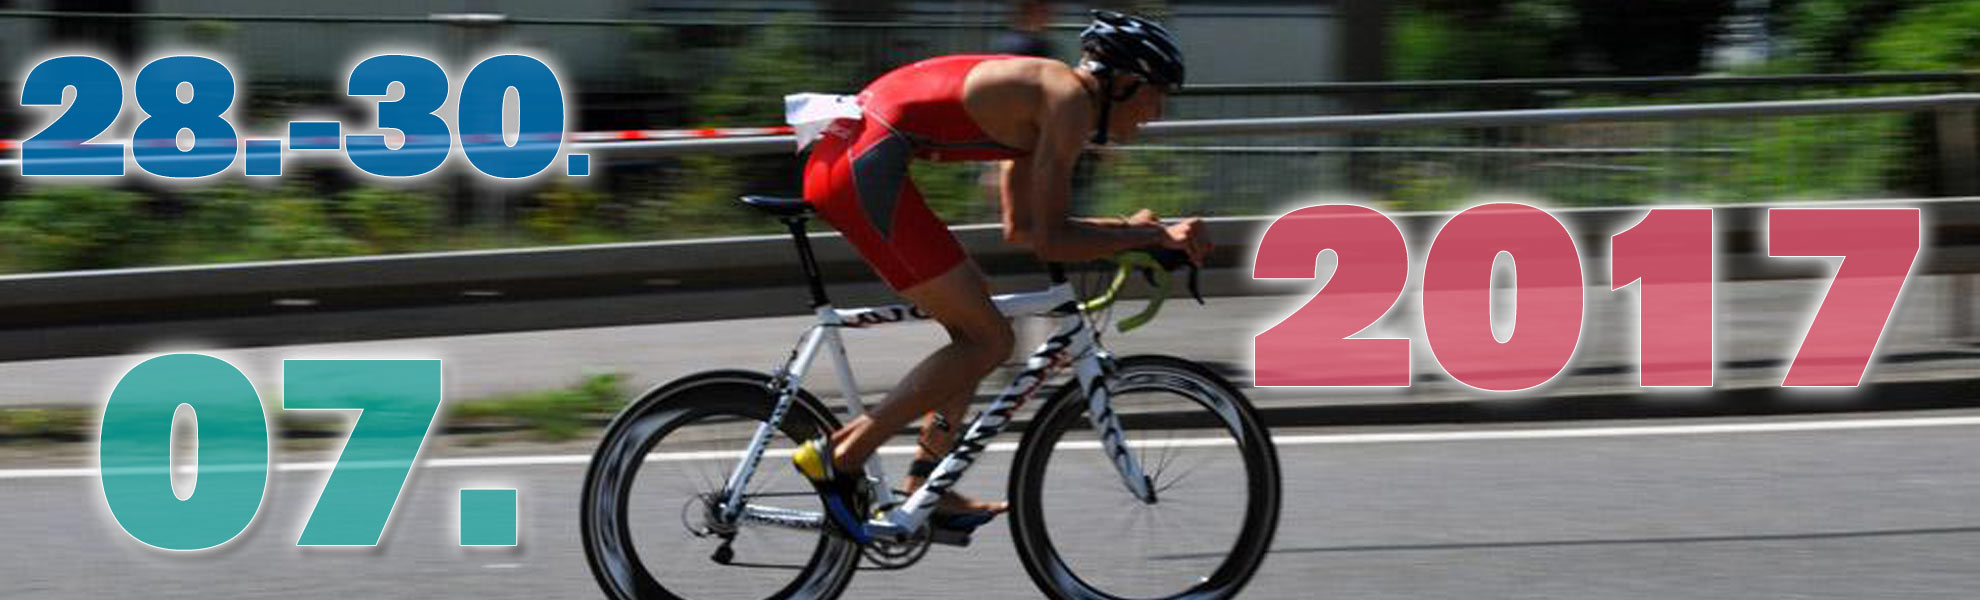 3. City Triathlon Merzig